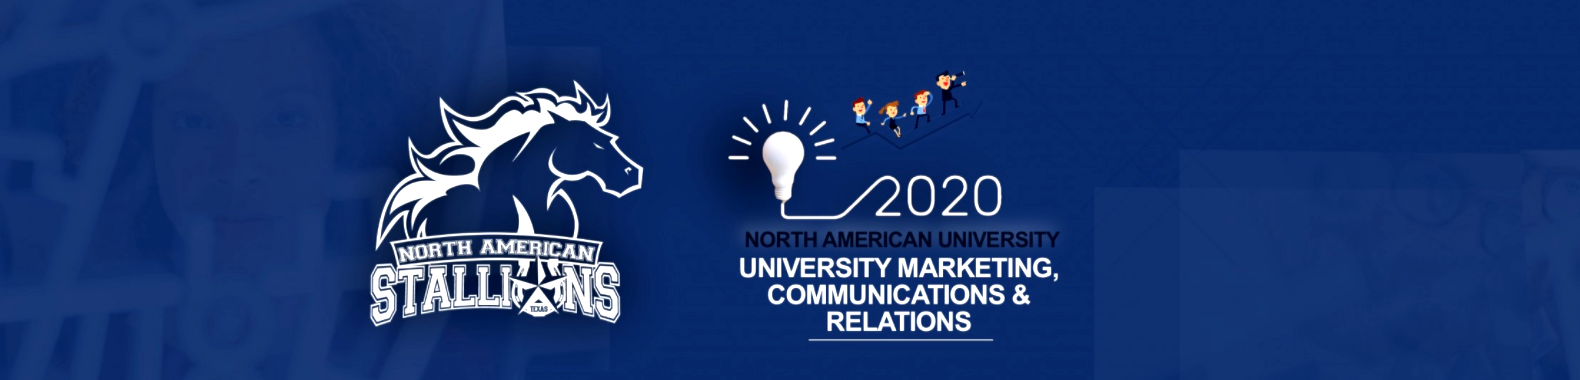 North American University University Marketing